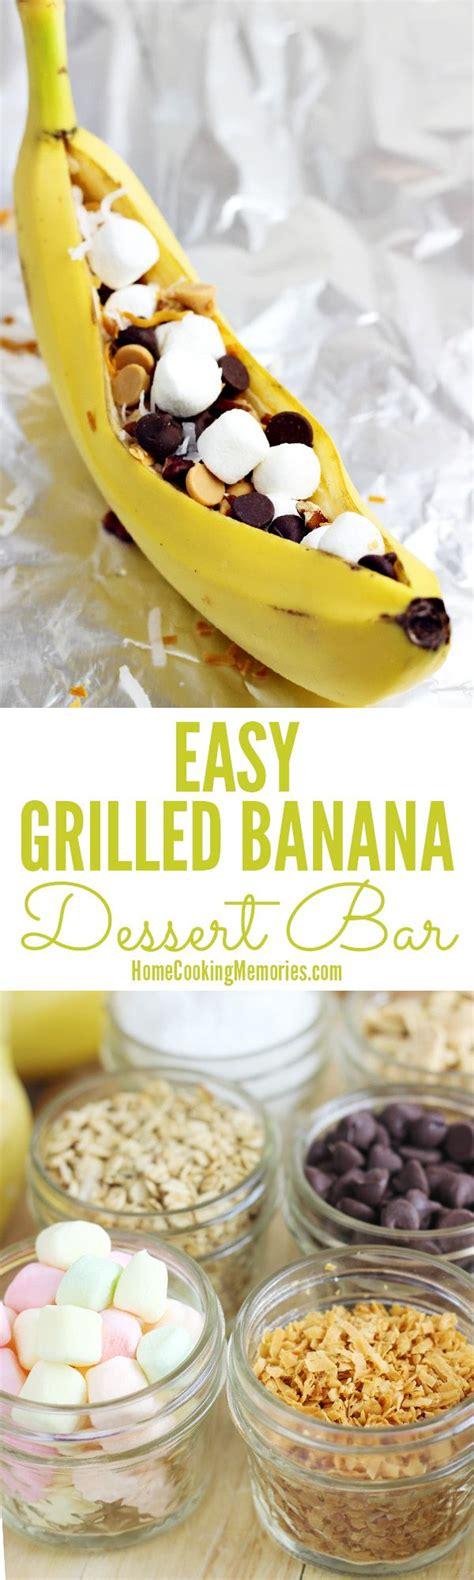 grilled banana dessert bar home 479 best images about home cooking memories on tortilla pinwheels memories and blue